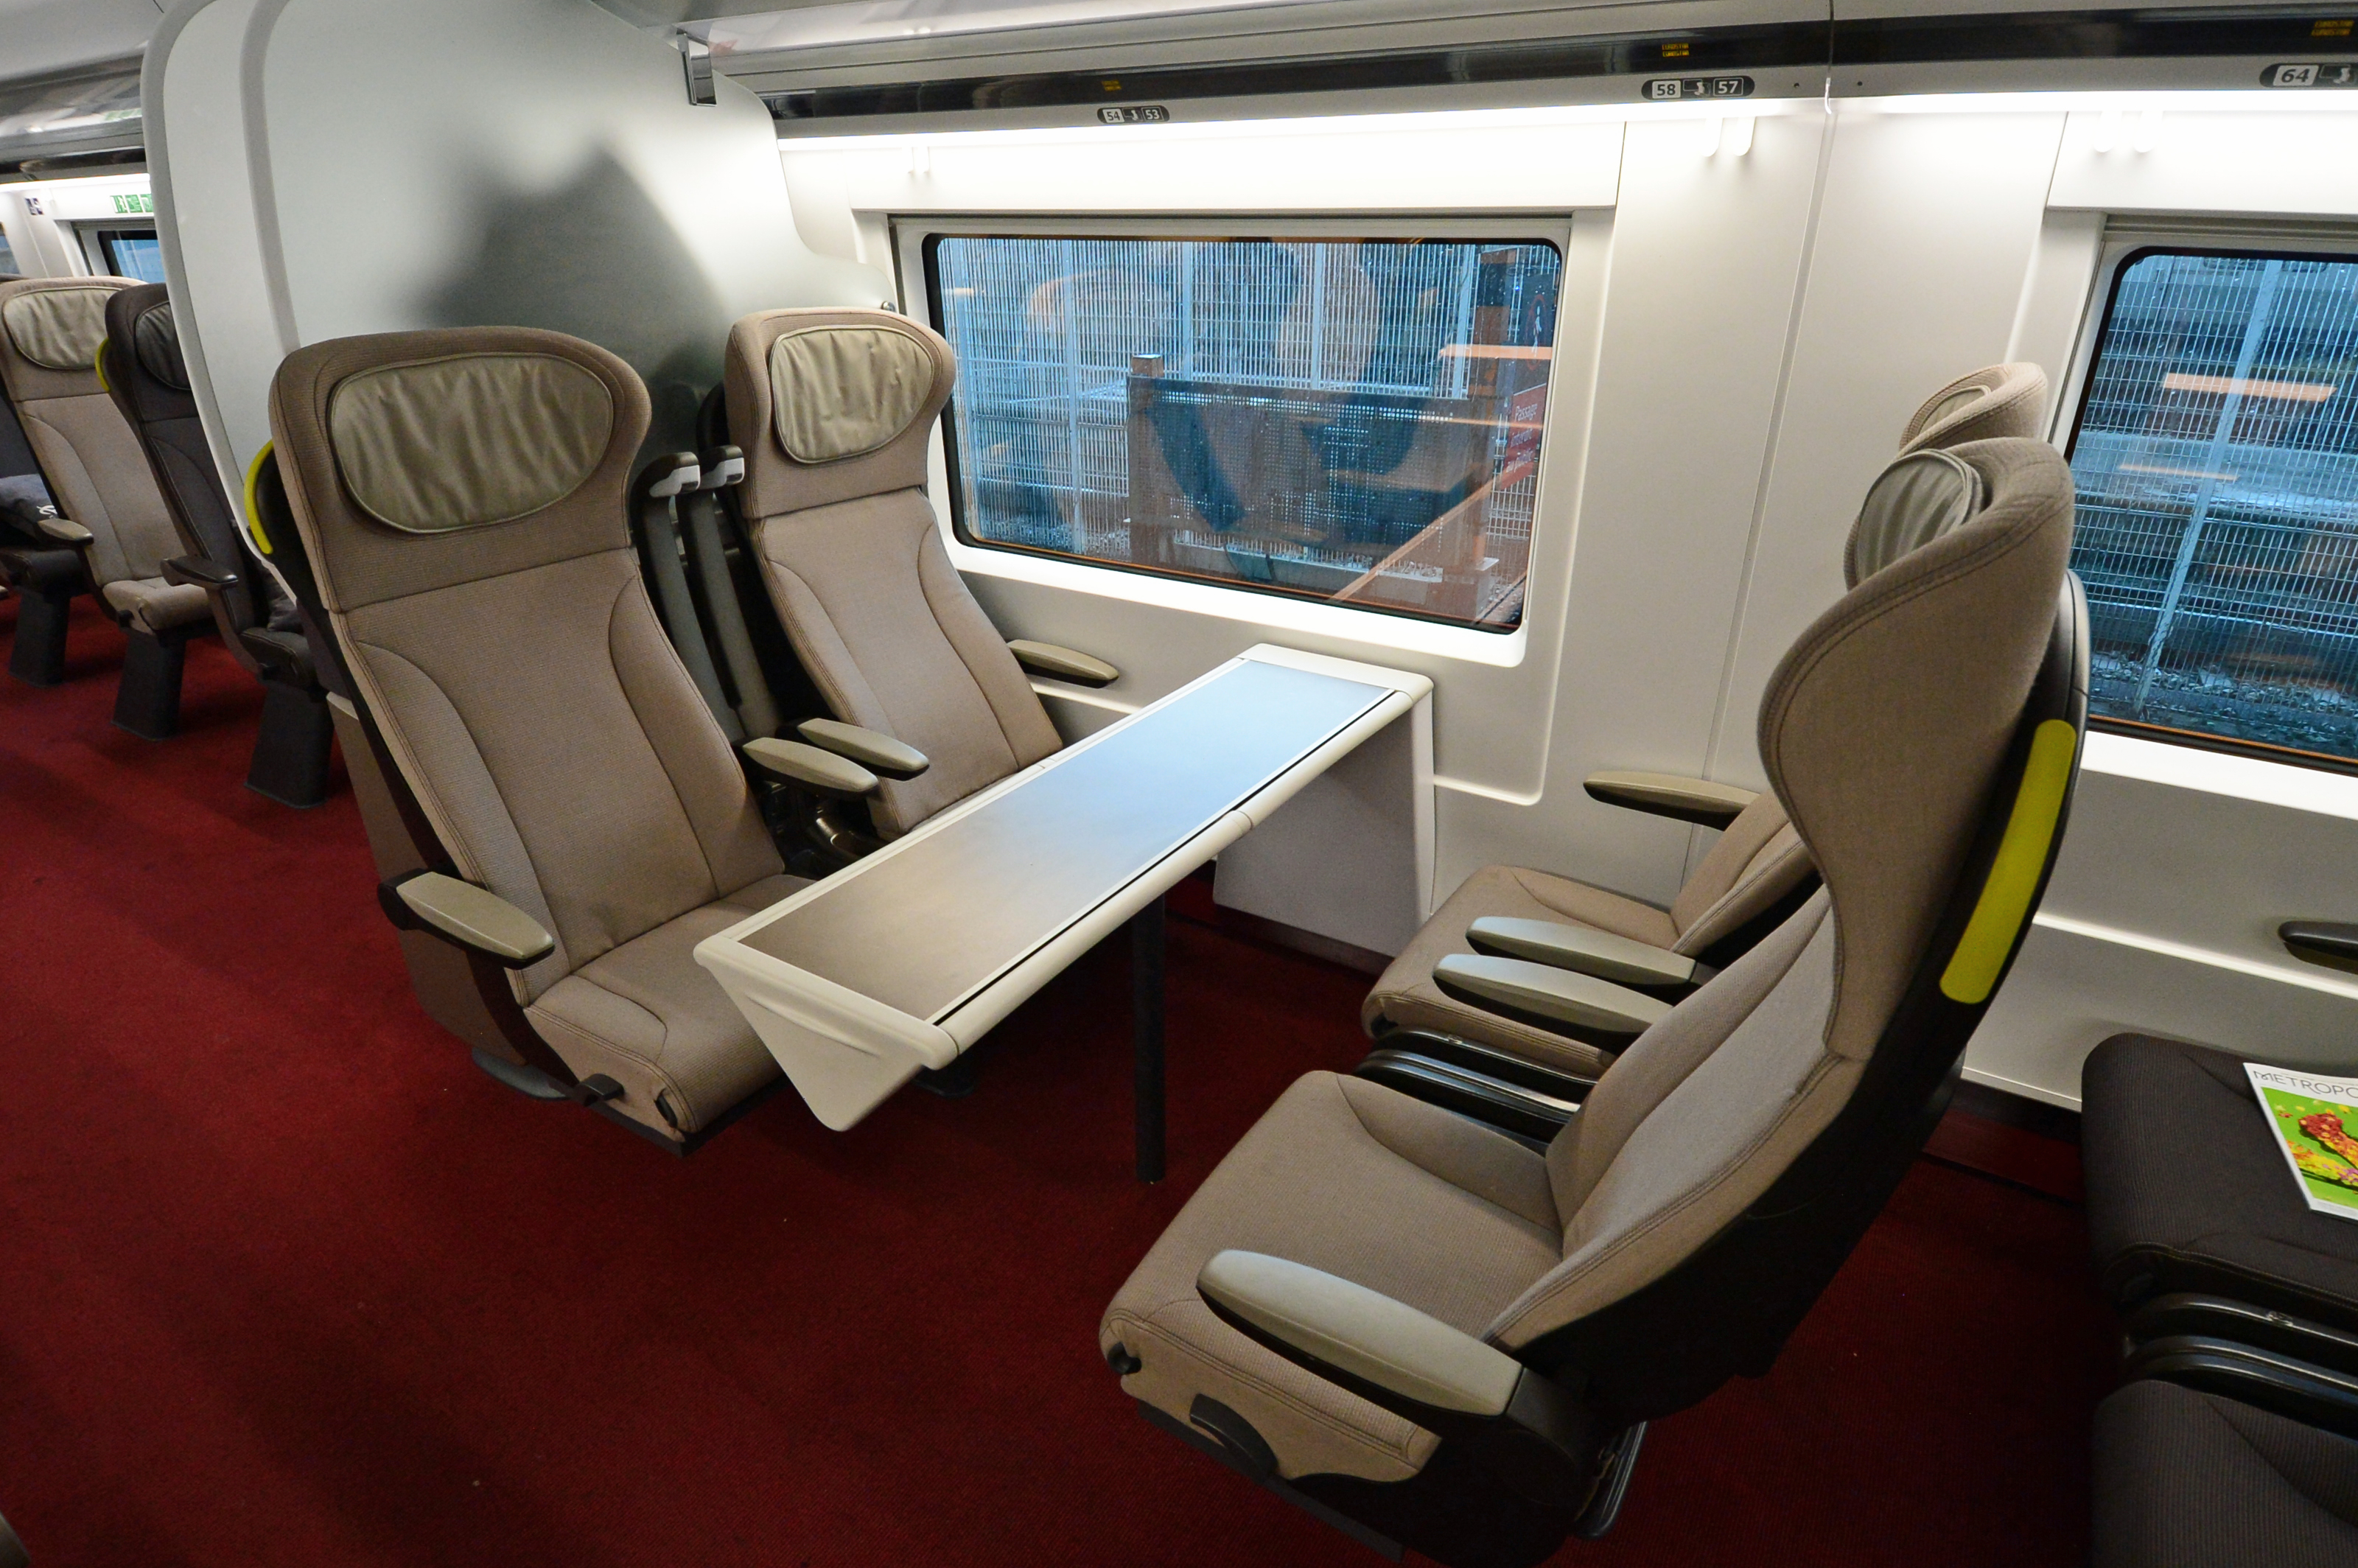 DG247036. Eurostar e320. Interior coach No1 (end car) 14.6.16